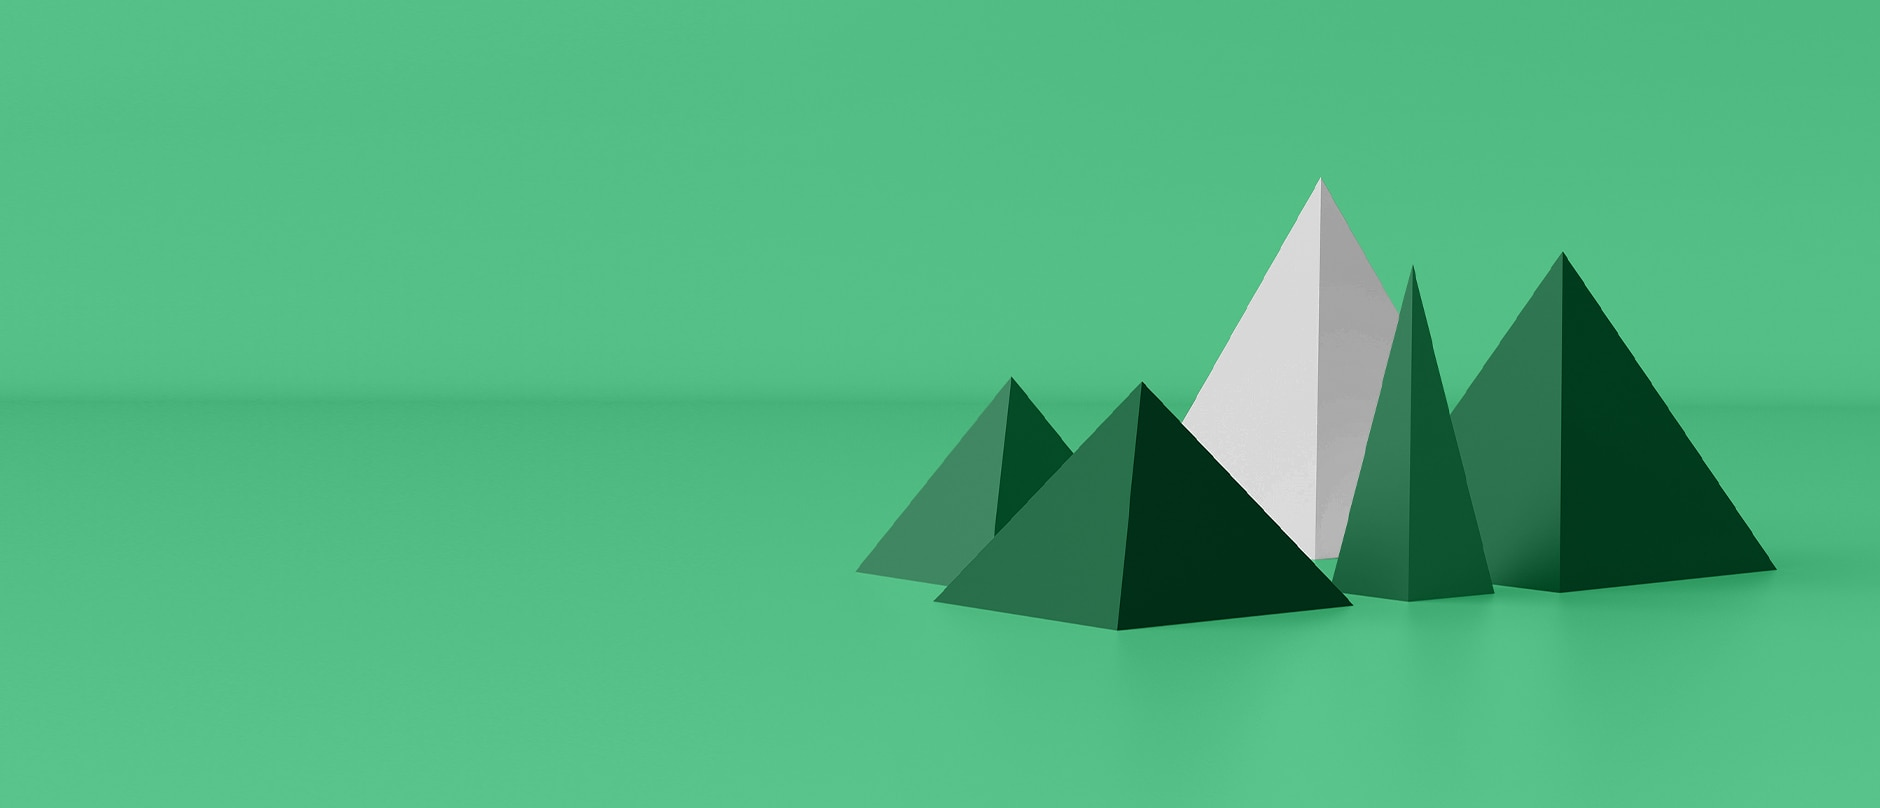 green and white pyramids